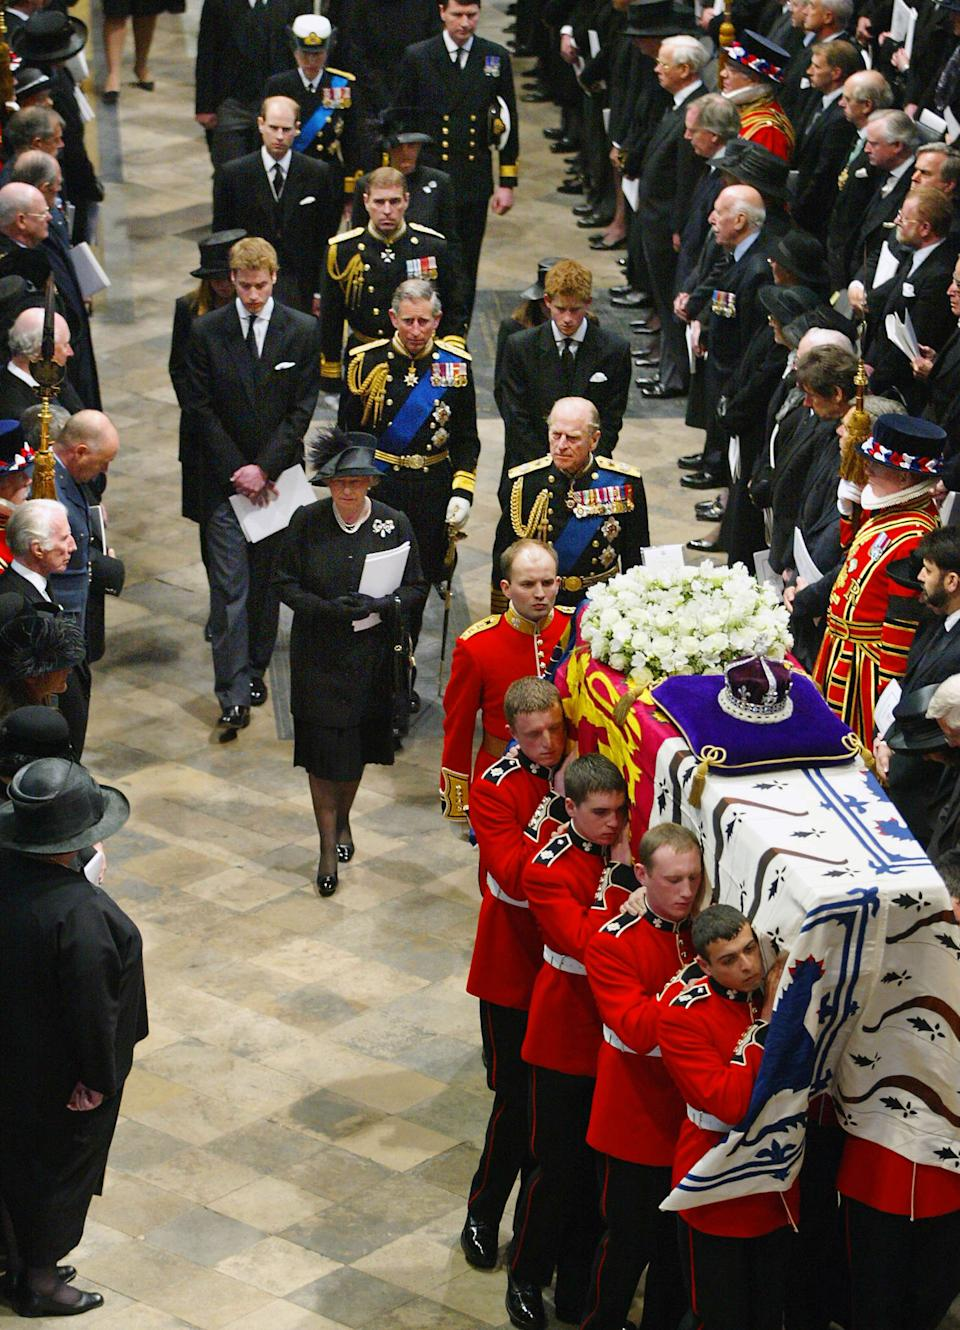 The British Royal Family follows the Queen Mother's coffin out of Westminster Abbey after the service in London 09 April 2002.